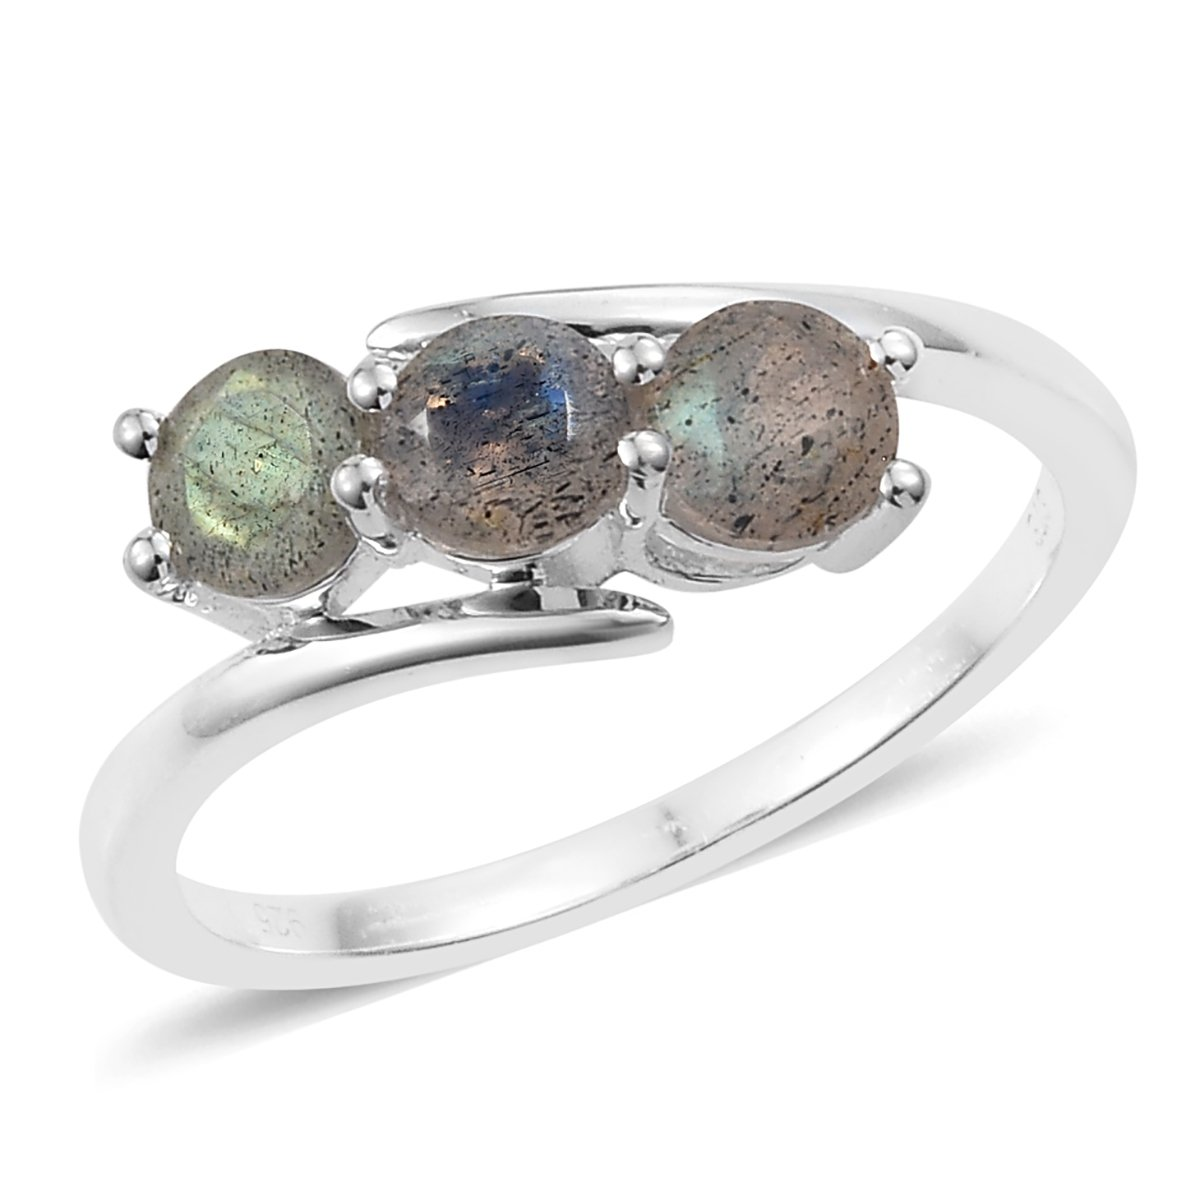 925 Sterling Silver 1.1 Cttw Round Labradorite Fashion Ring For Women Size 5